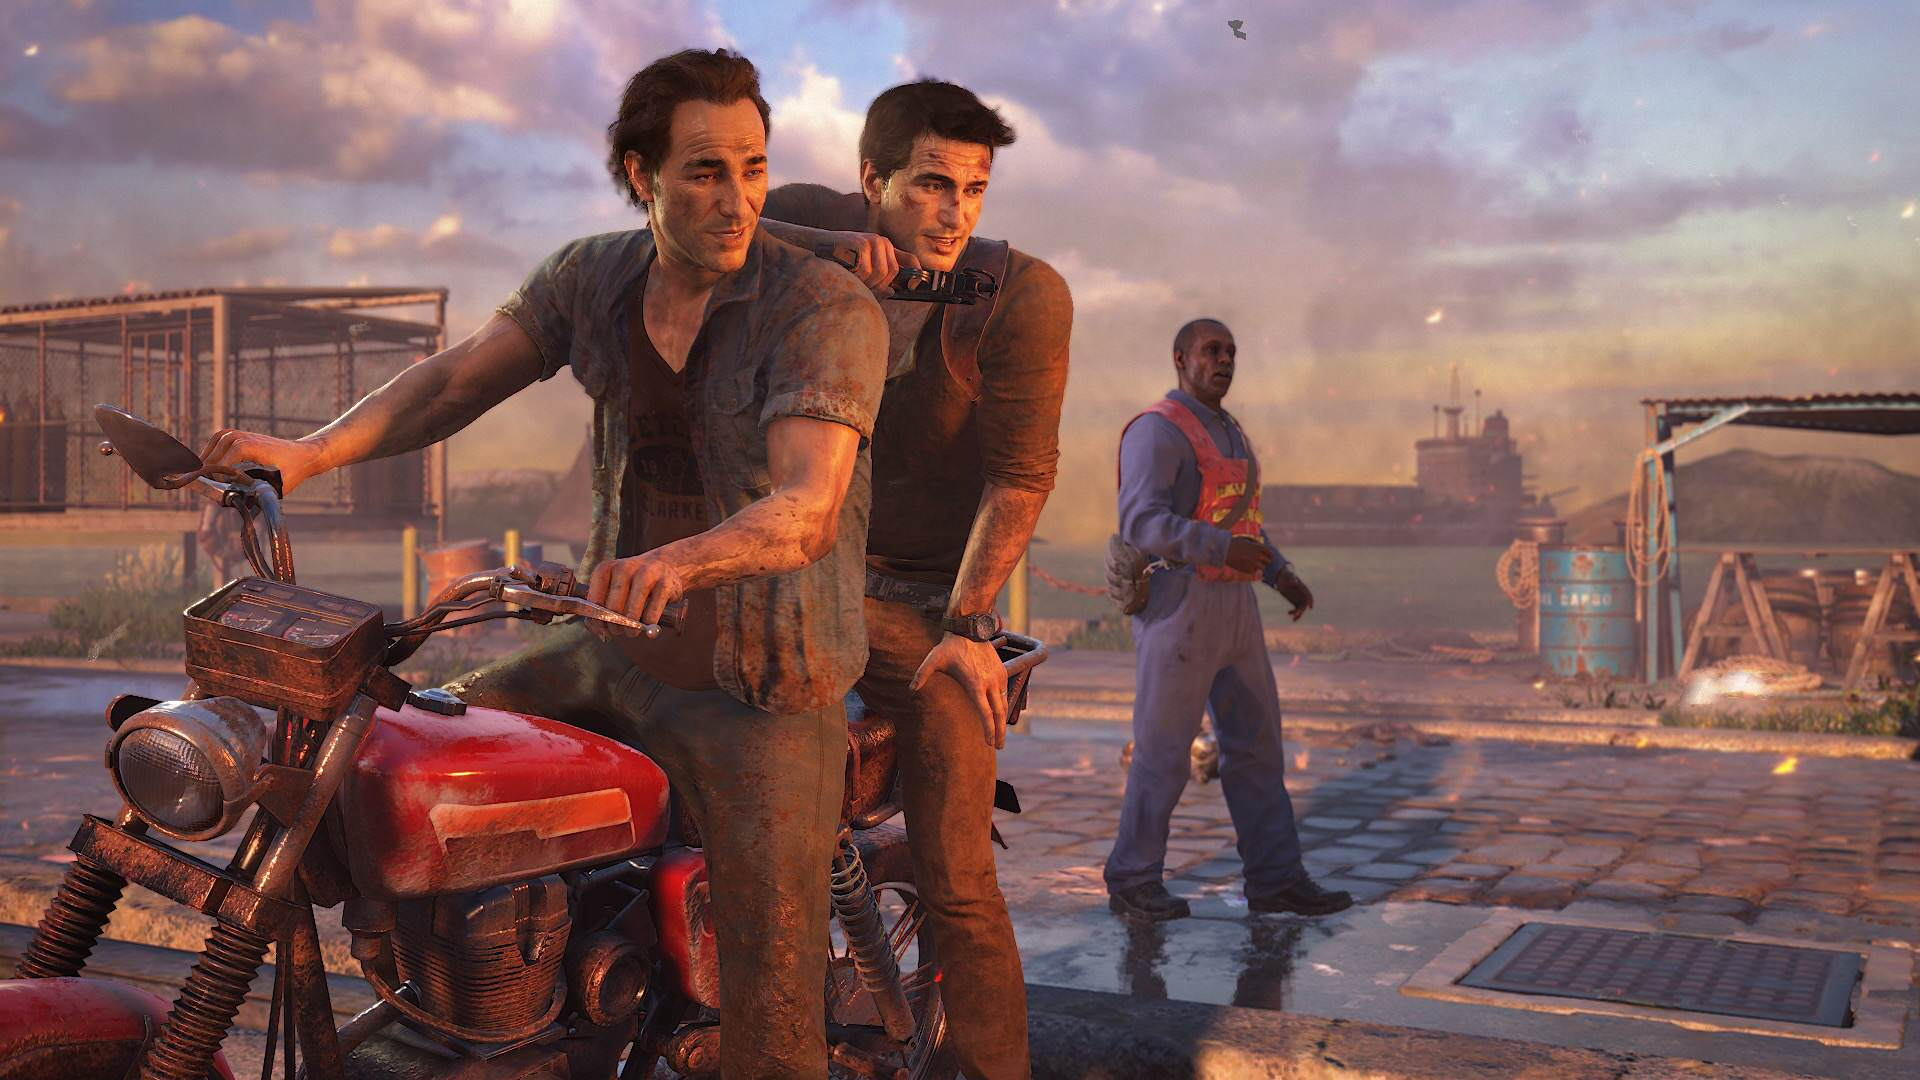 2886491 uncharted 4 drake sam survived Uncharted 4s Story Changed 100% After New Directors Joined